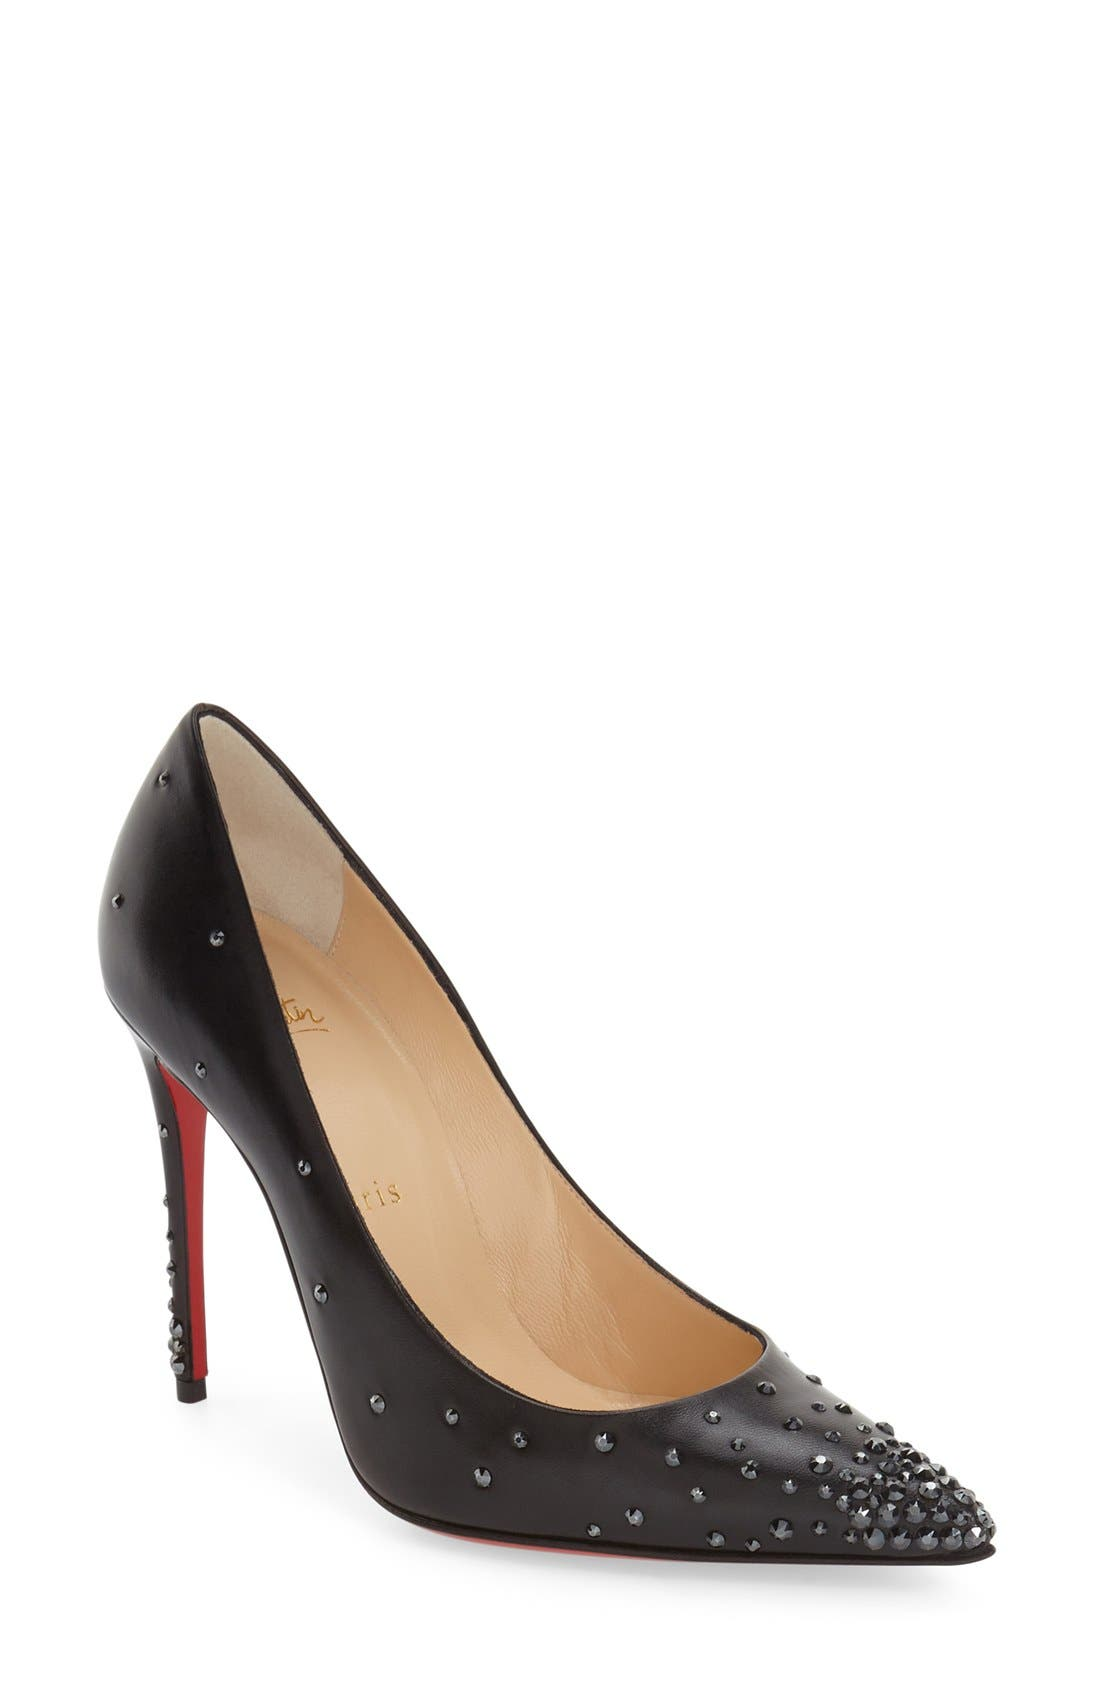 CHRISTIAN LOUBOUTIN 'Degrastrass' Pointy Toe Pump